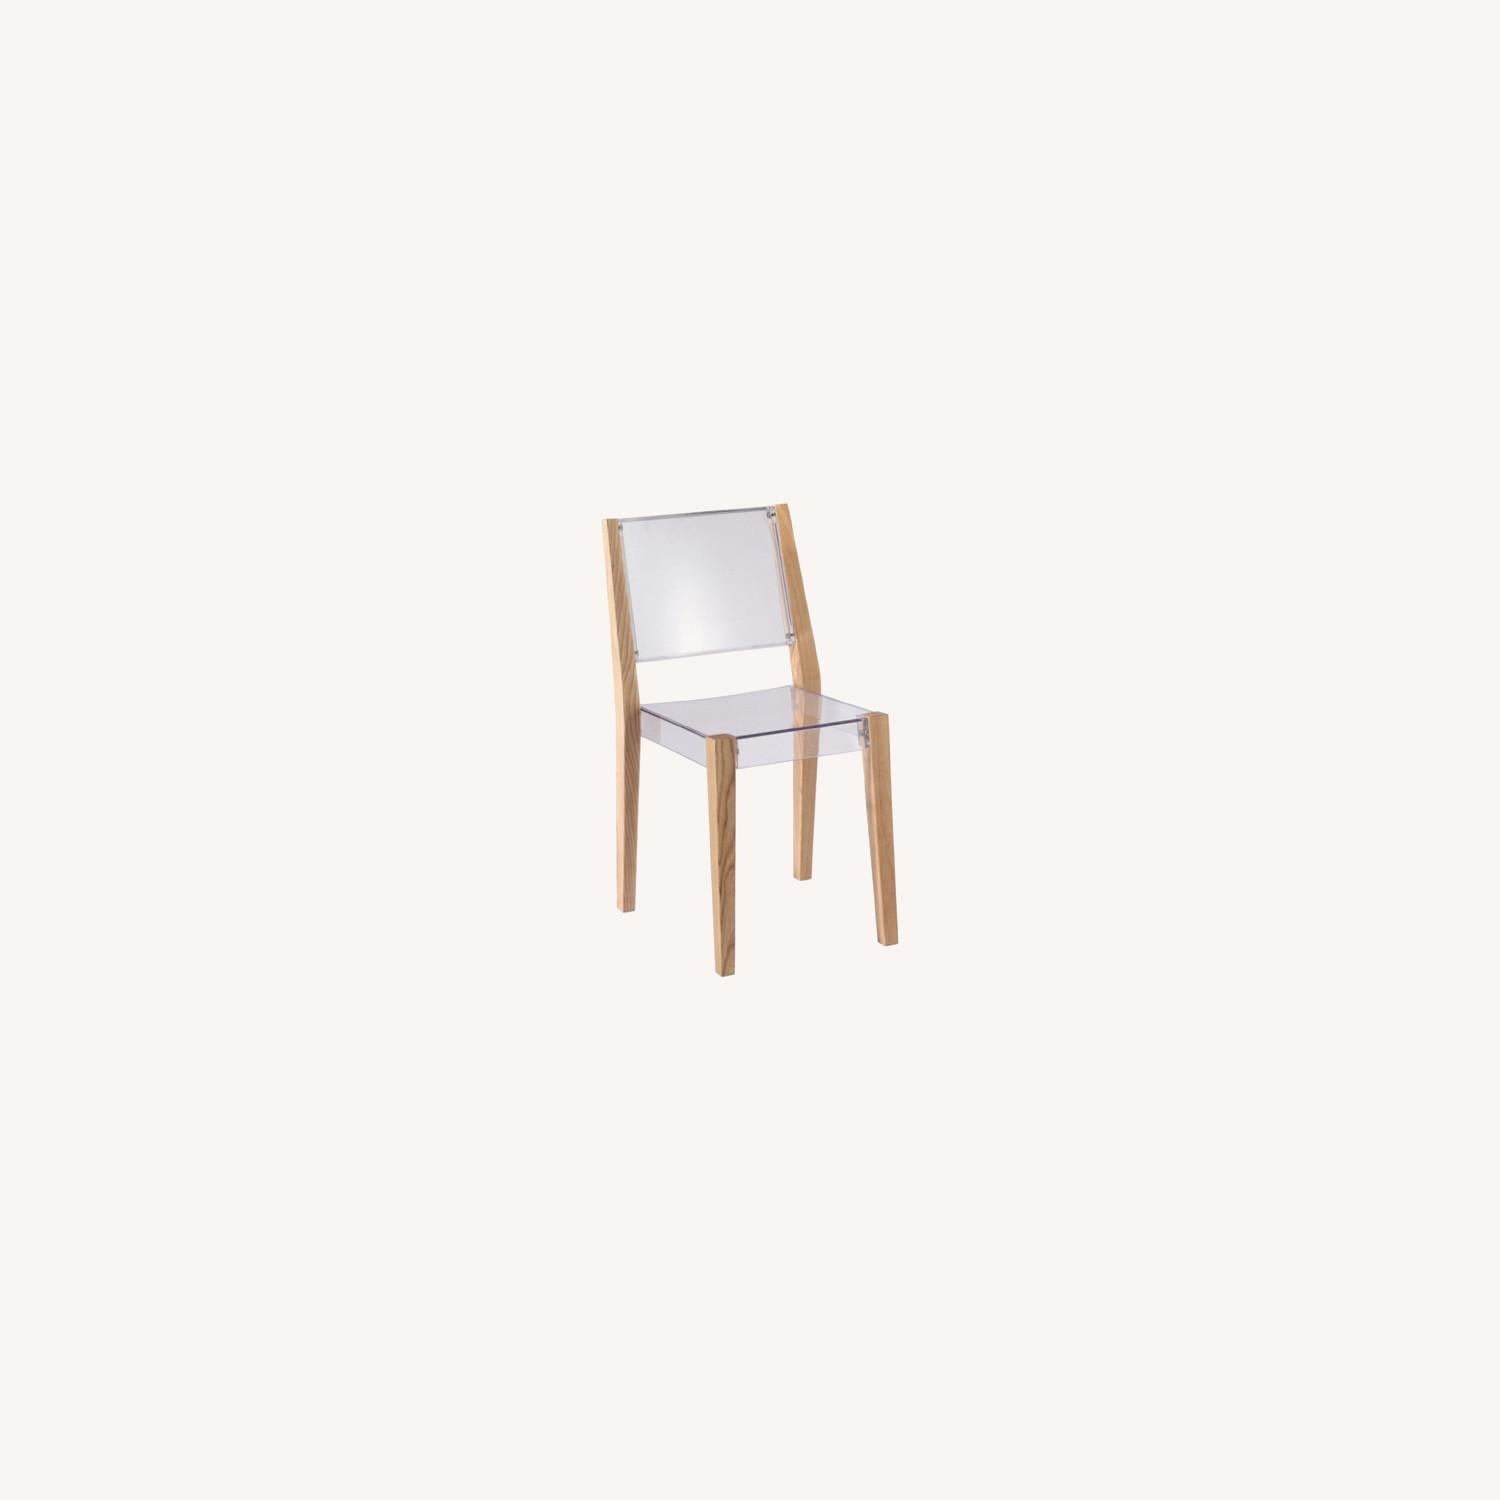 Side Chair In Natural Wood & Transparent Seat - image-4